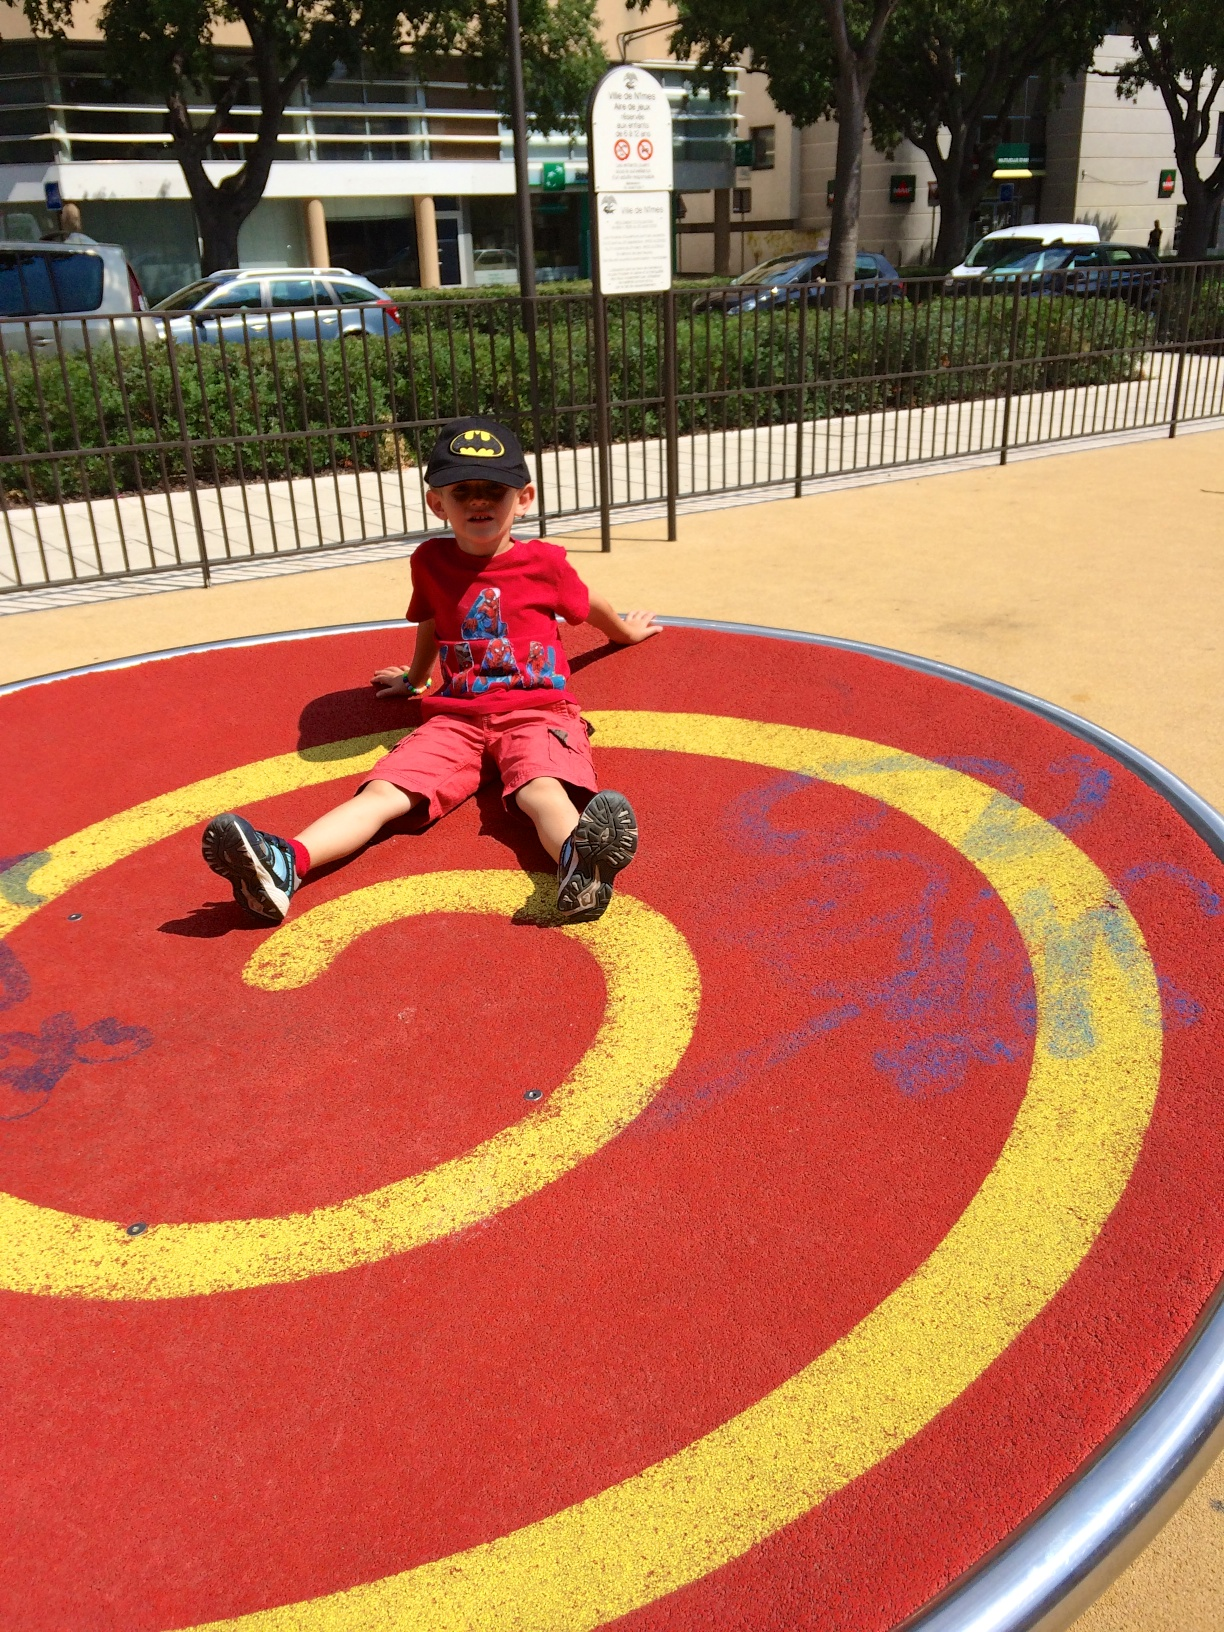 Kian on the whirly disc